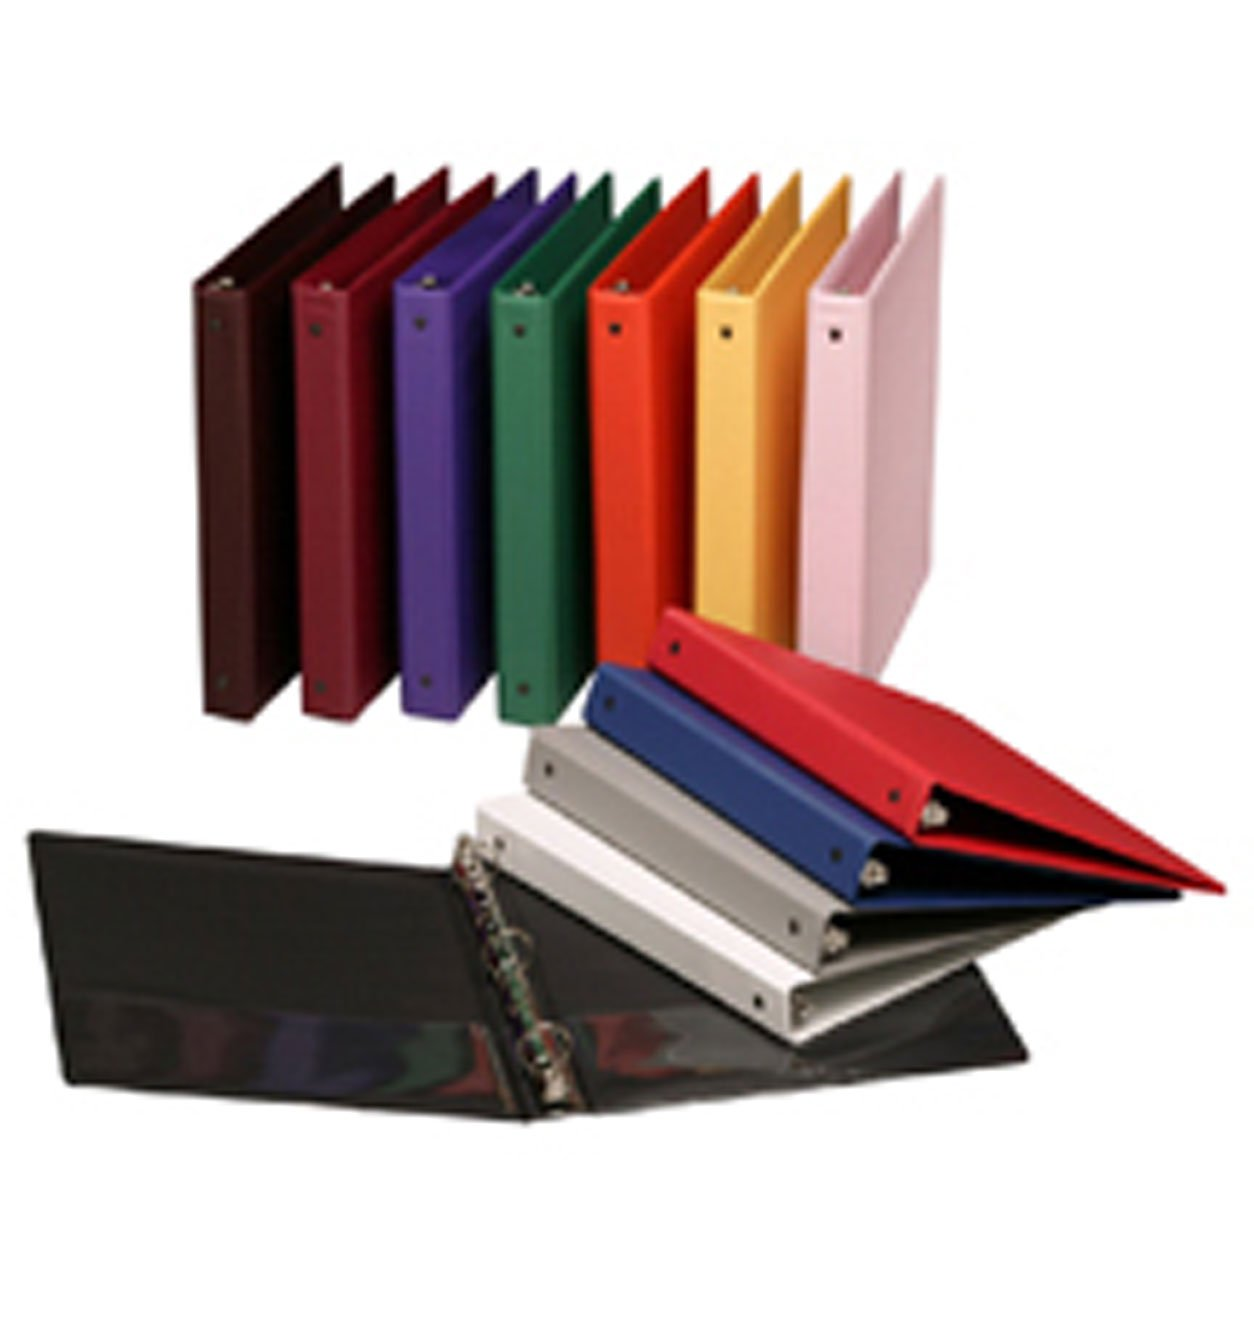 Assorted Colors 3-Ring View Binders, 2 inch Capacity, 8.5 x 11, Case of 11